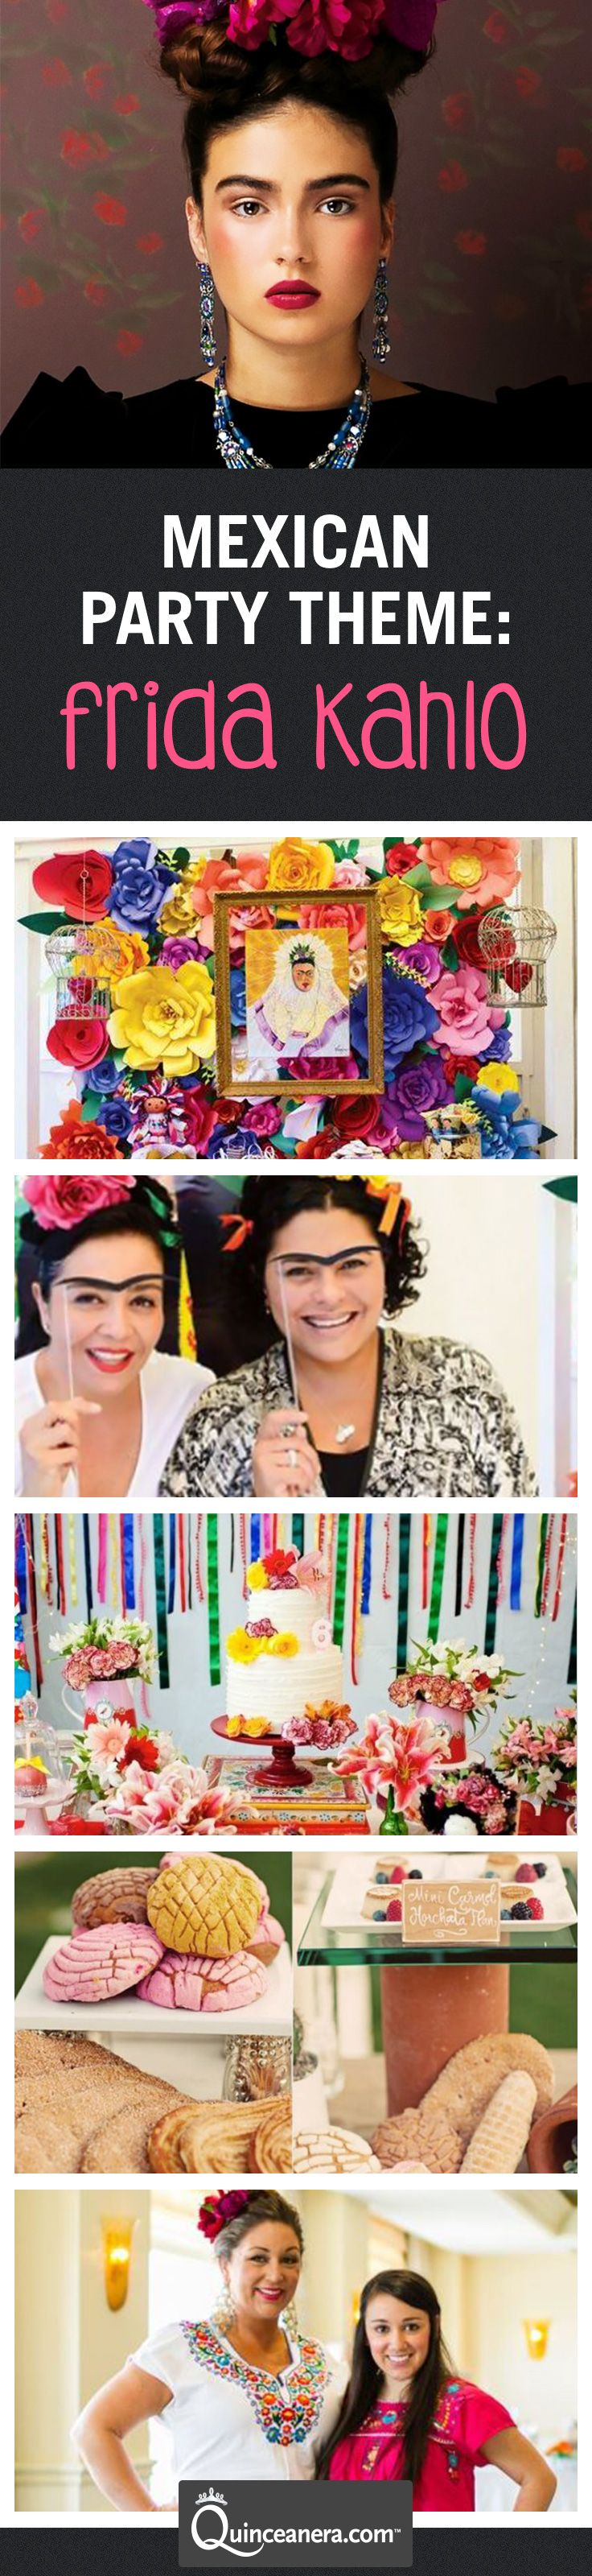 Are you a fan of the popular Mexican painter? Paint your Quinceanera with cheerful Mexican colors and decorate your fiesta inspired by Frida Kahlo's artistic ways.